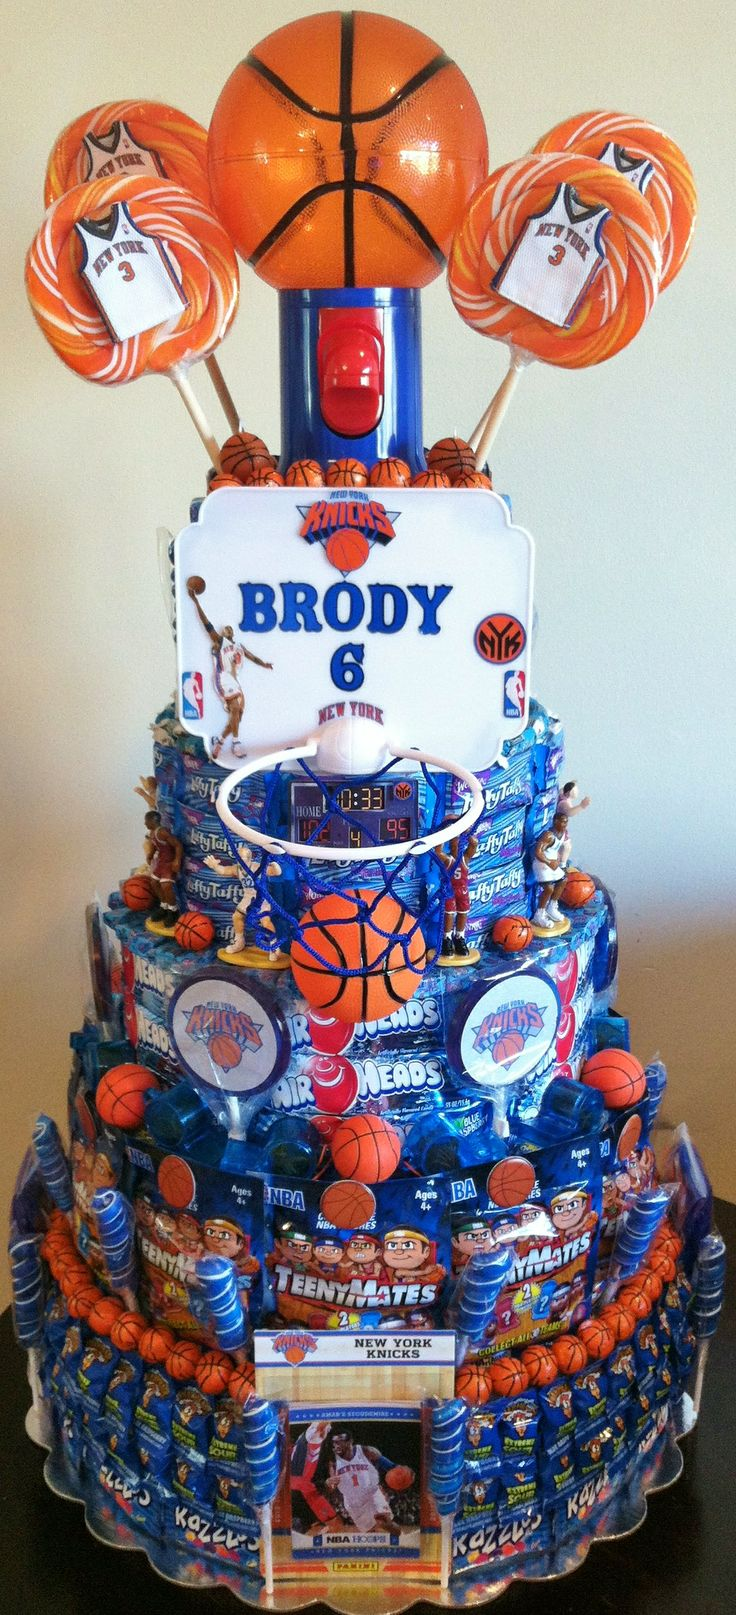 Basketball Party! Knicks Team Basketball Theme Cake